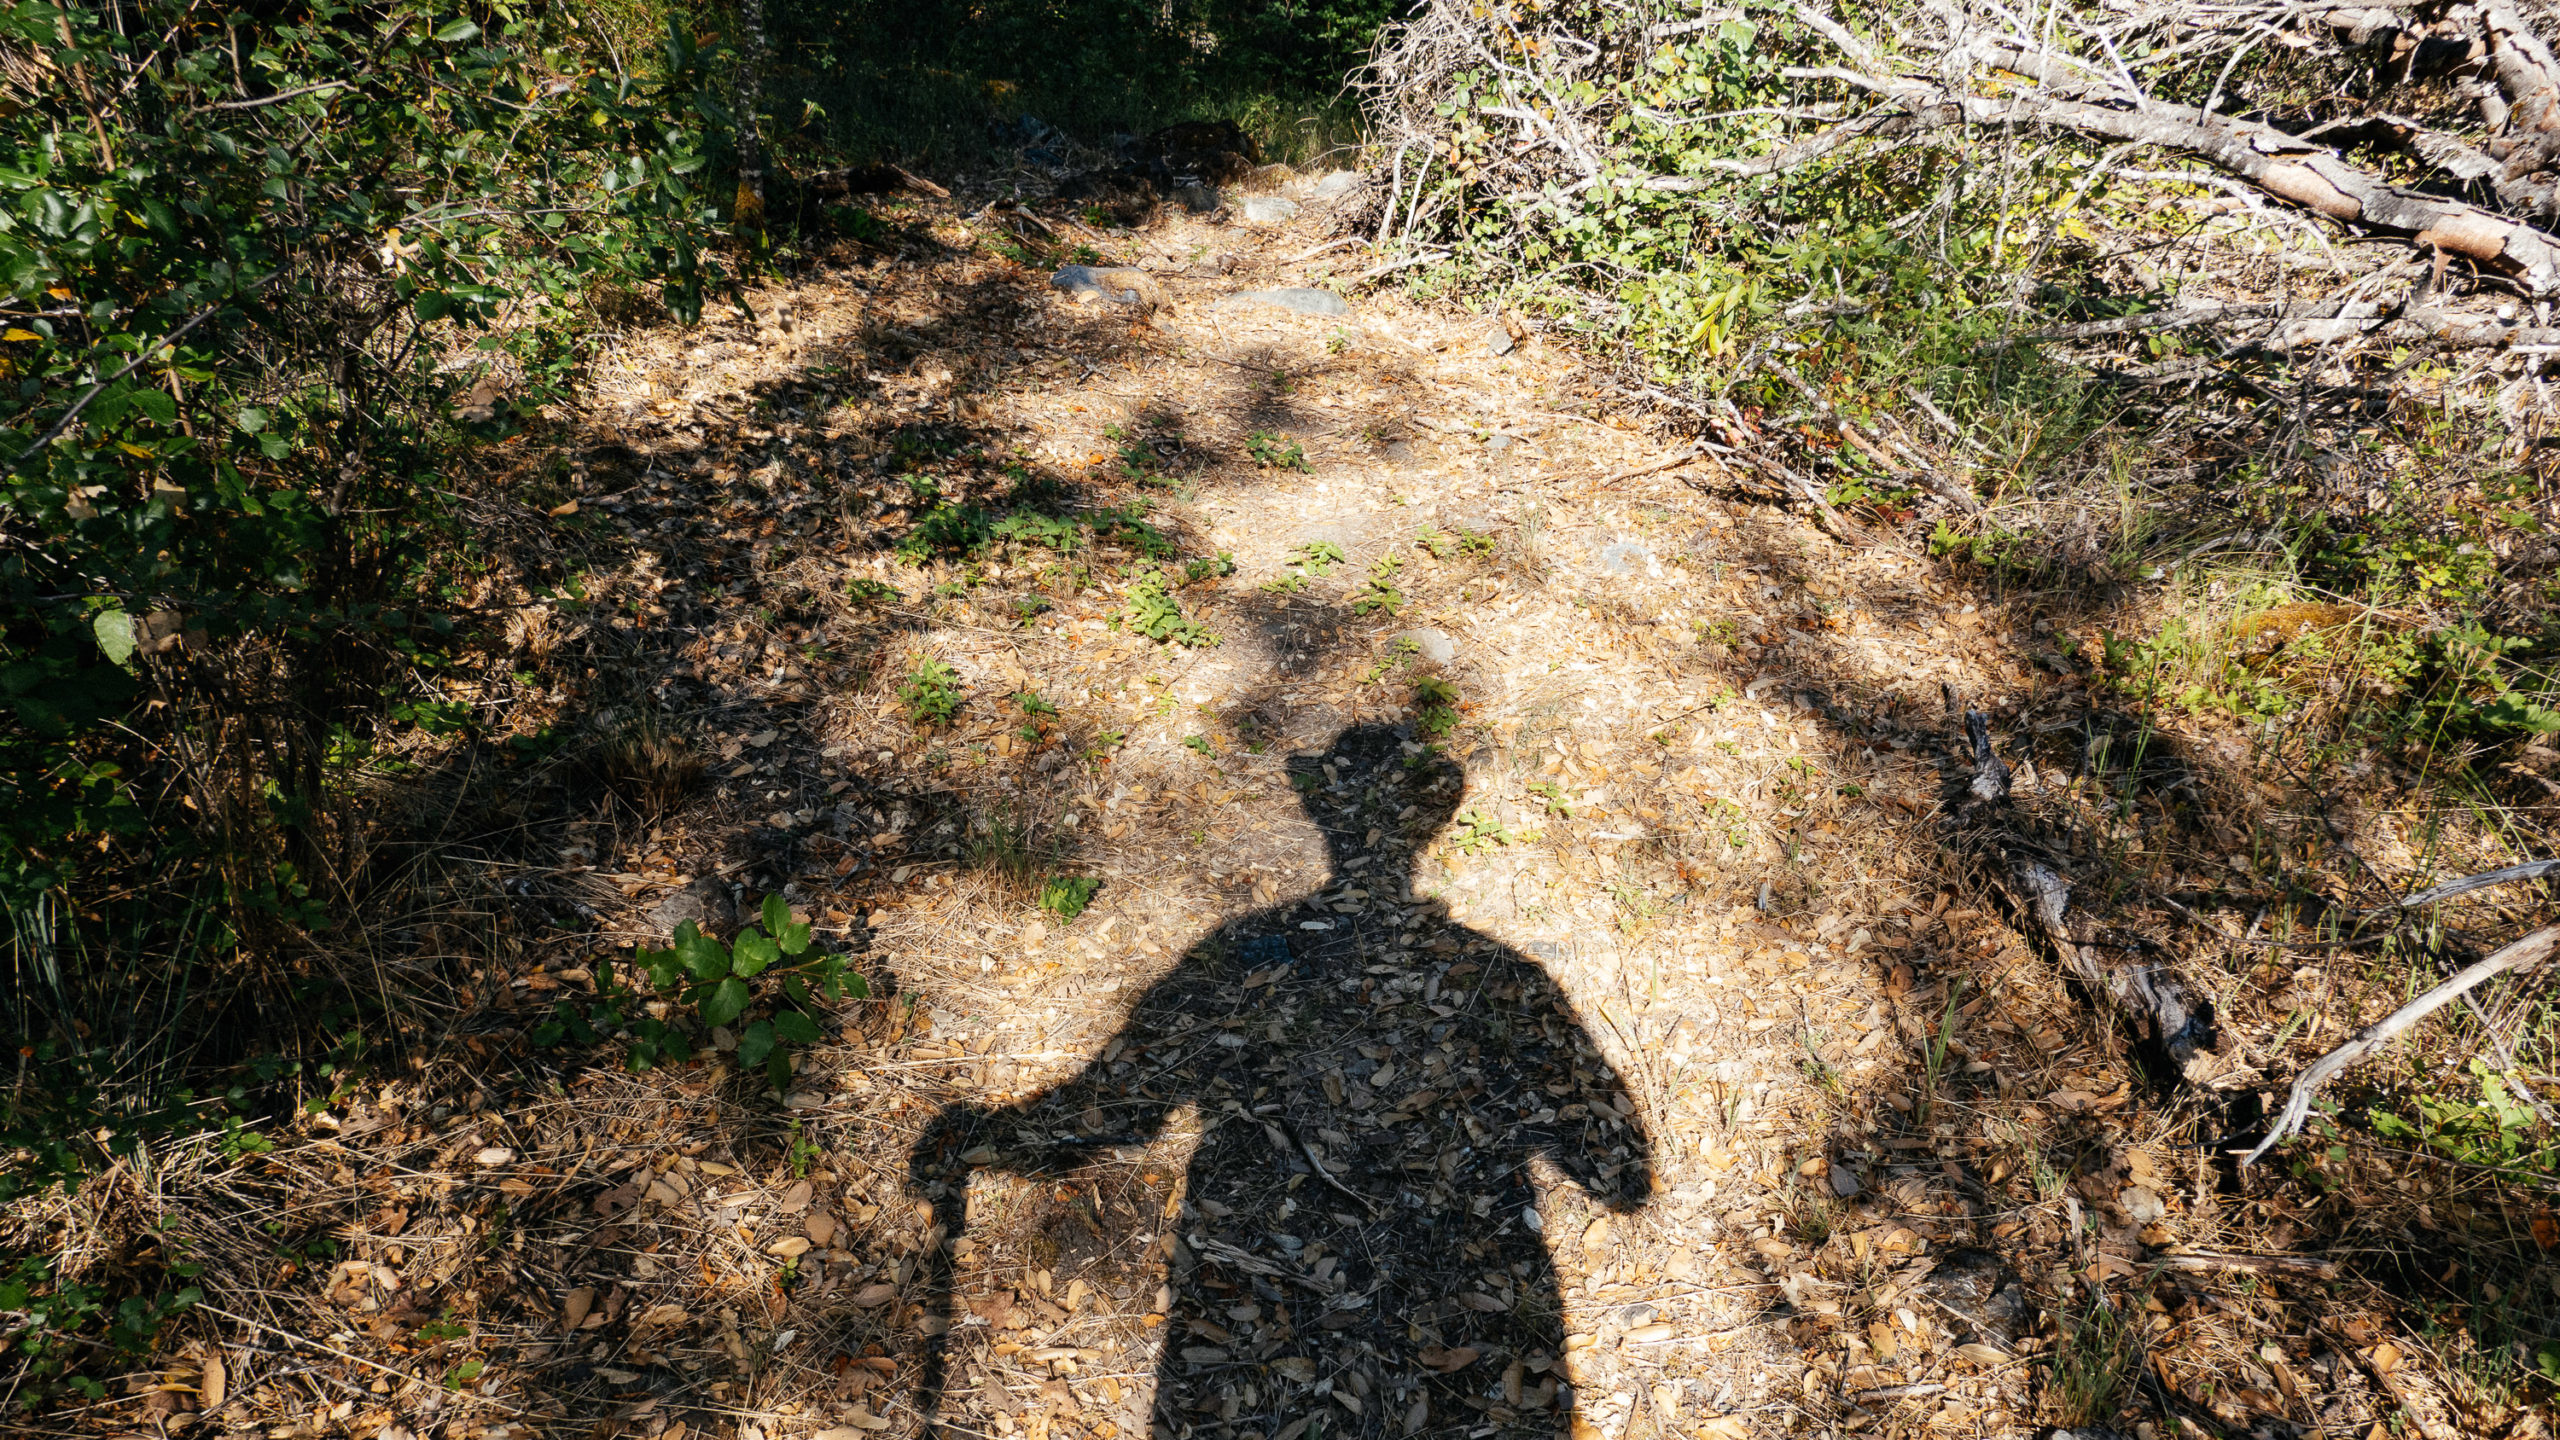 Shadow of a man in a wide brimmed hat with hiking pole on a dirt path